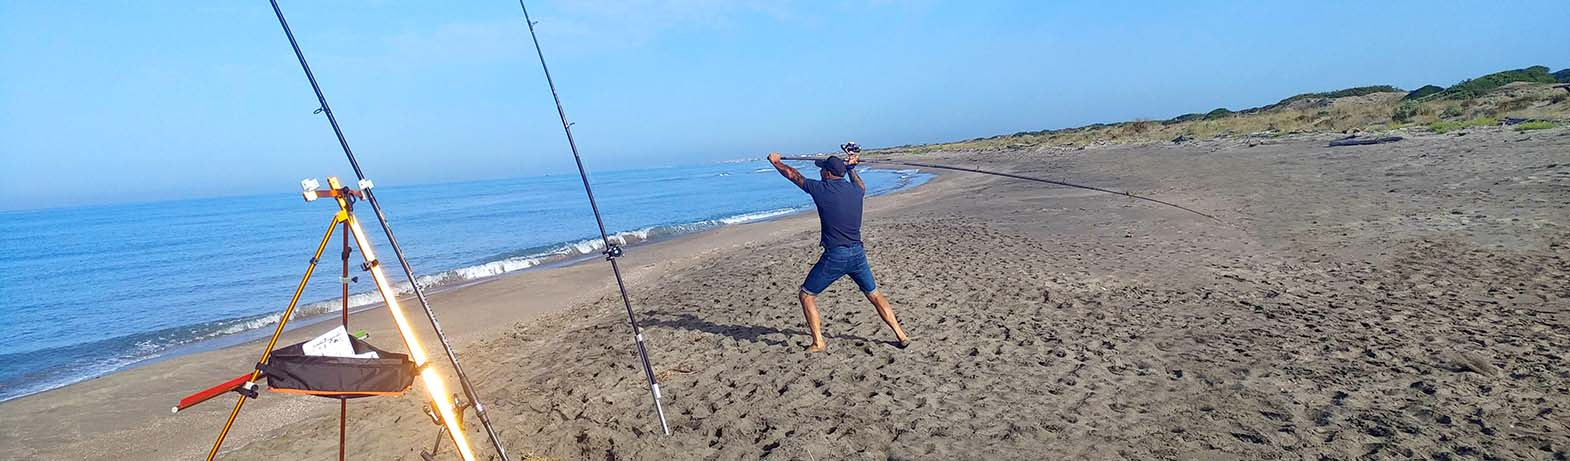 Travi SurfCasting